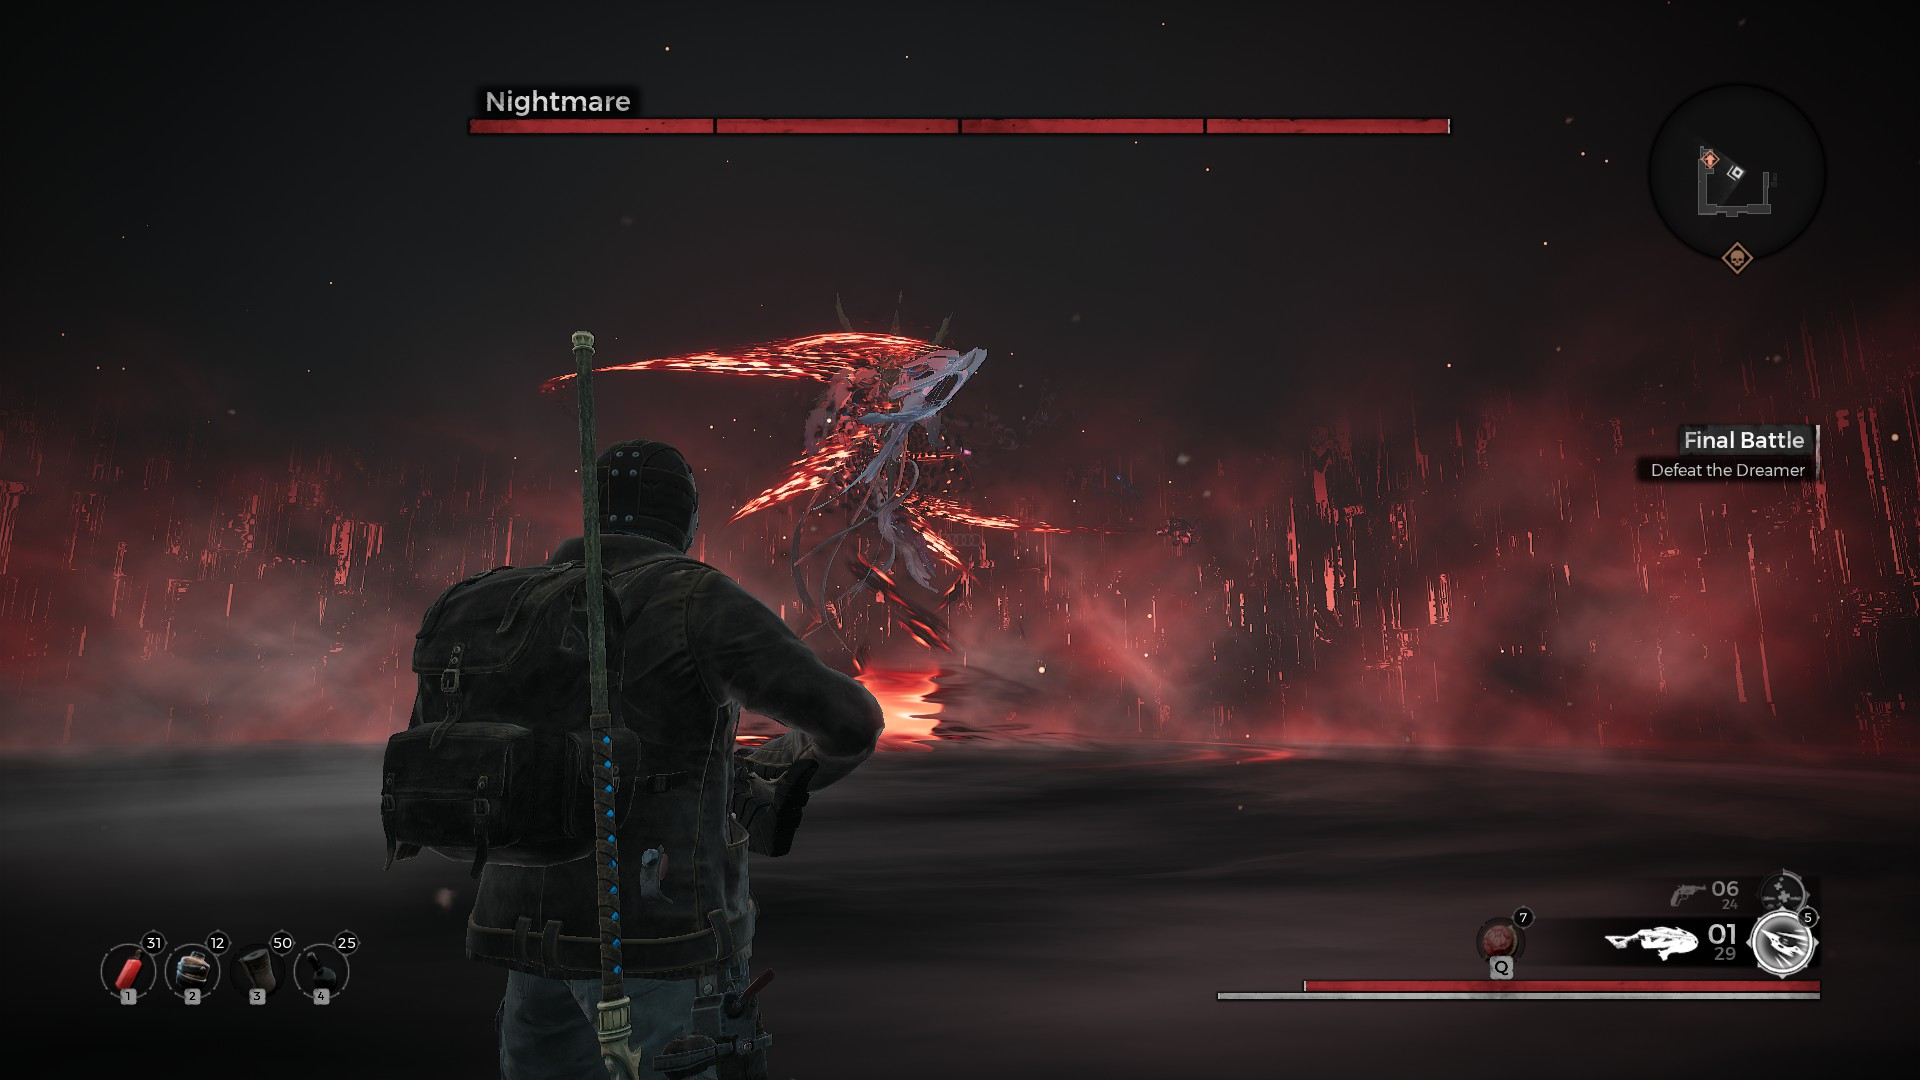 Remnant: From the Ashes - How to Fight All Bosses in Game + Achievements and Characters Information - -Dreamer/Nightmare strategy - 9281402